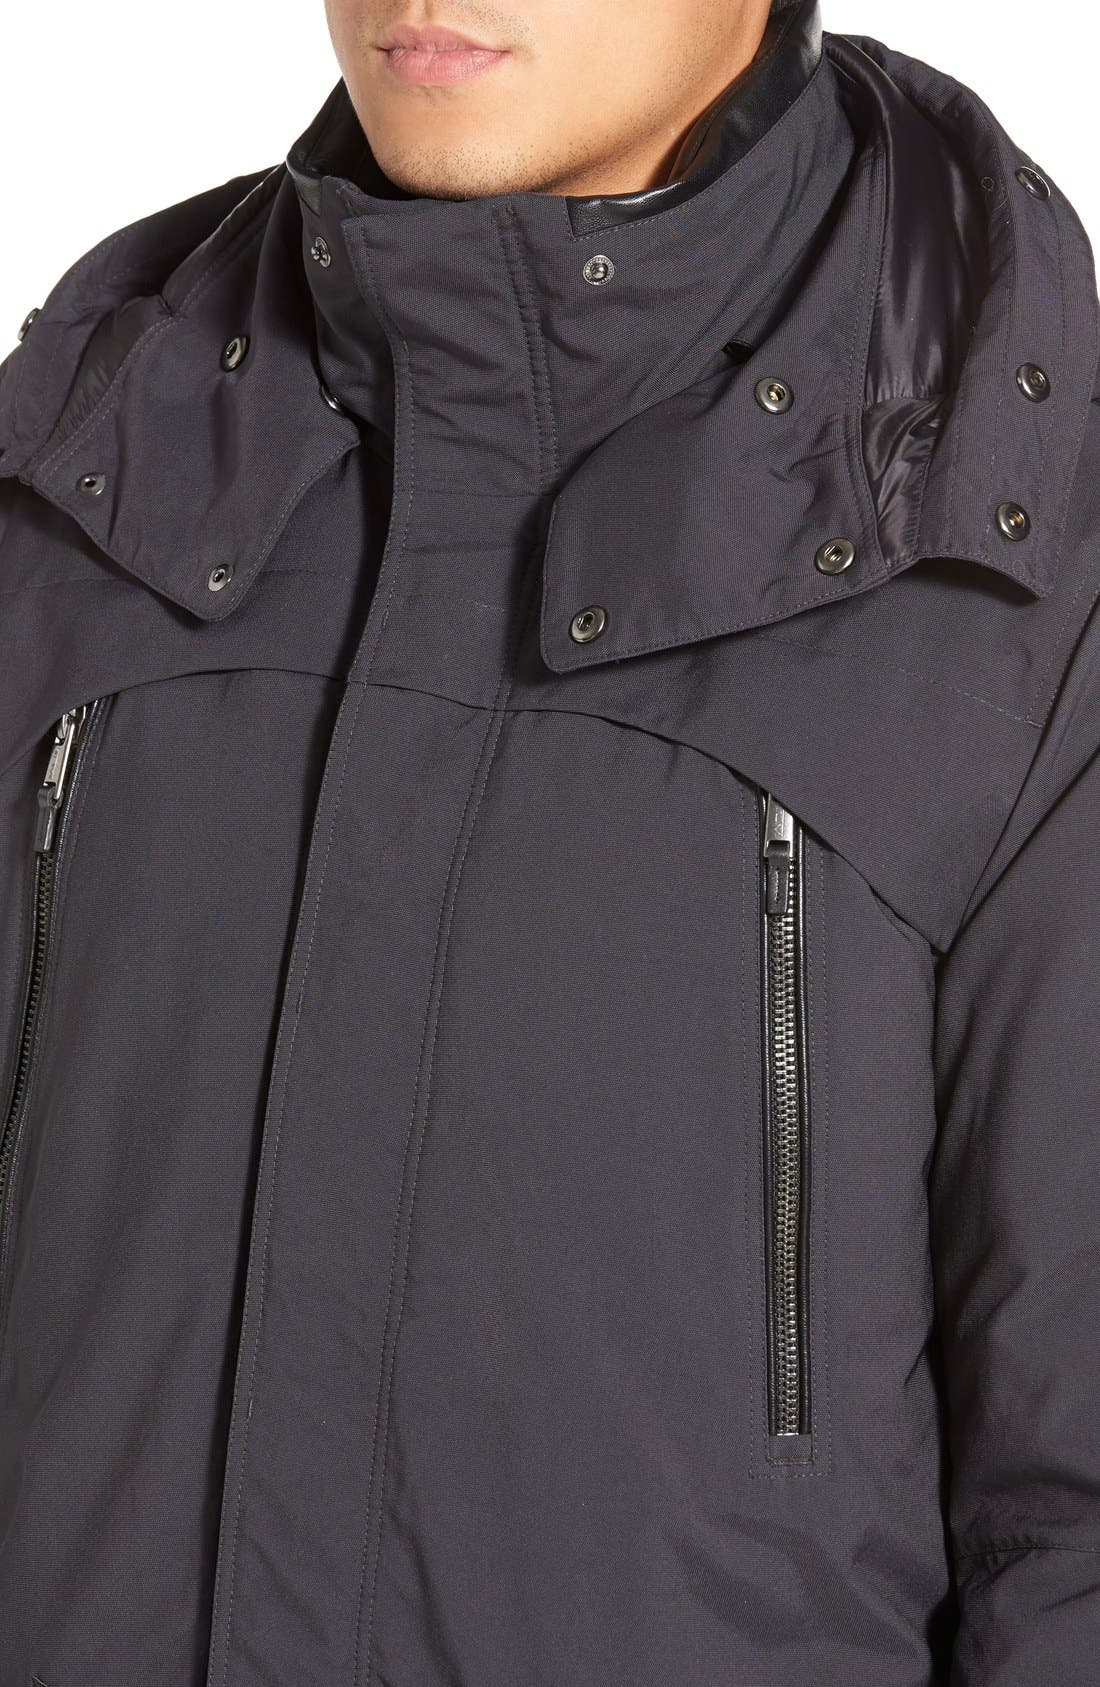 TUMI,                             'Fully Loaded' Parka with Genuine Coyote Fur Trim,                             Alternate thumbnail 2, color,                             021